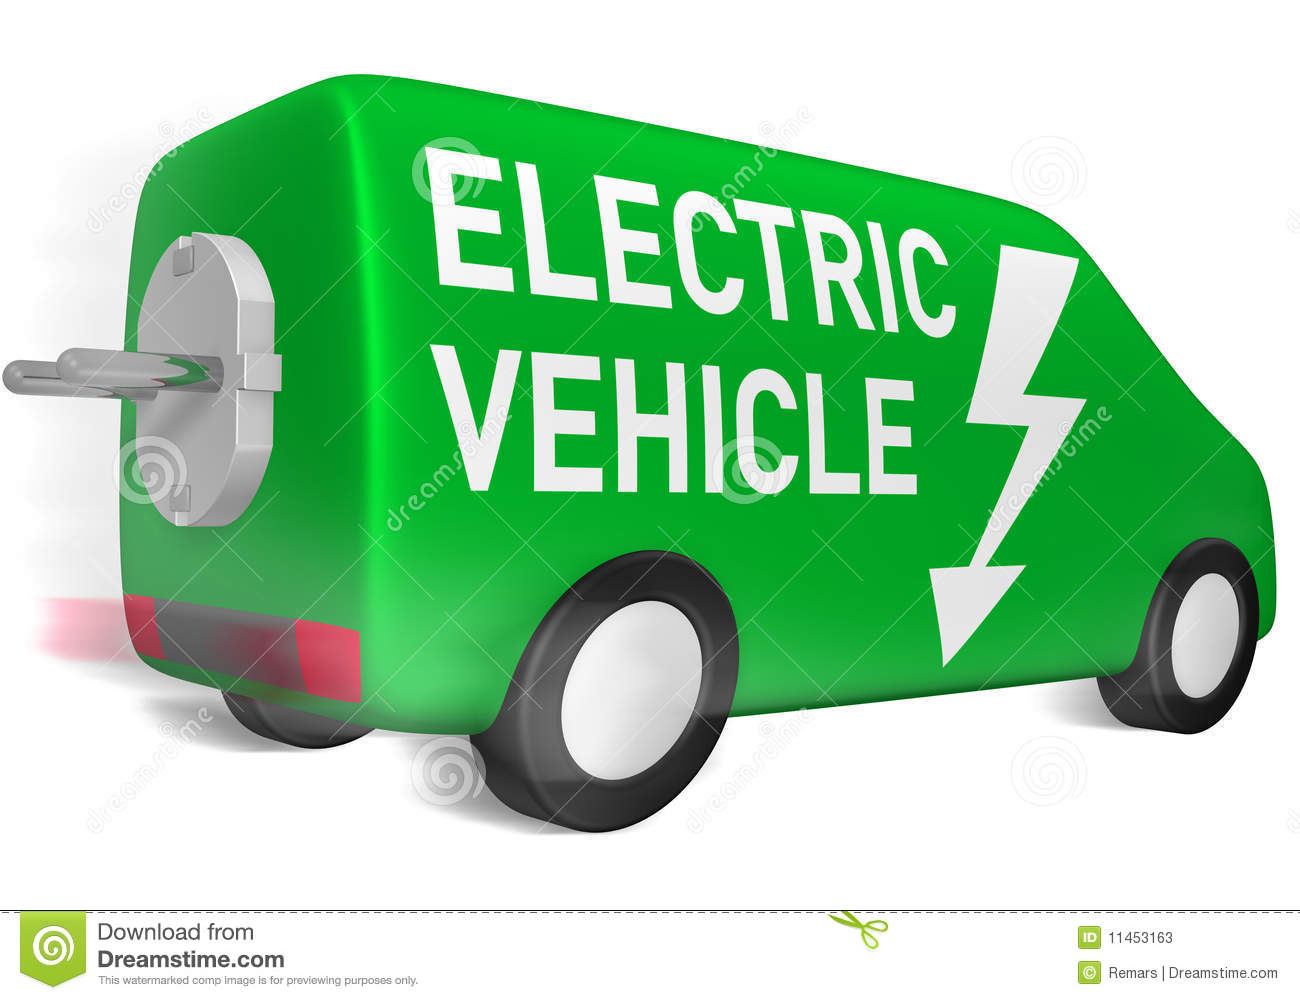 Electric Vehicle Stock Photos - Image: 11453163